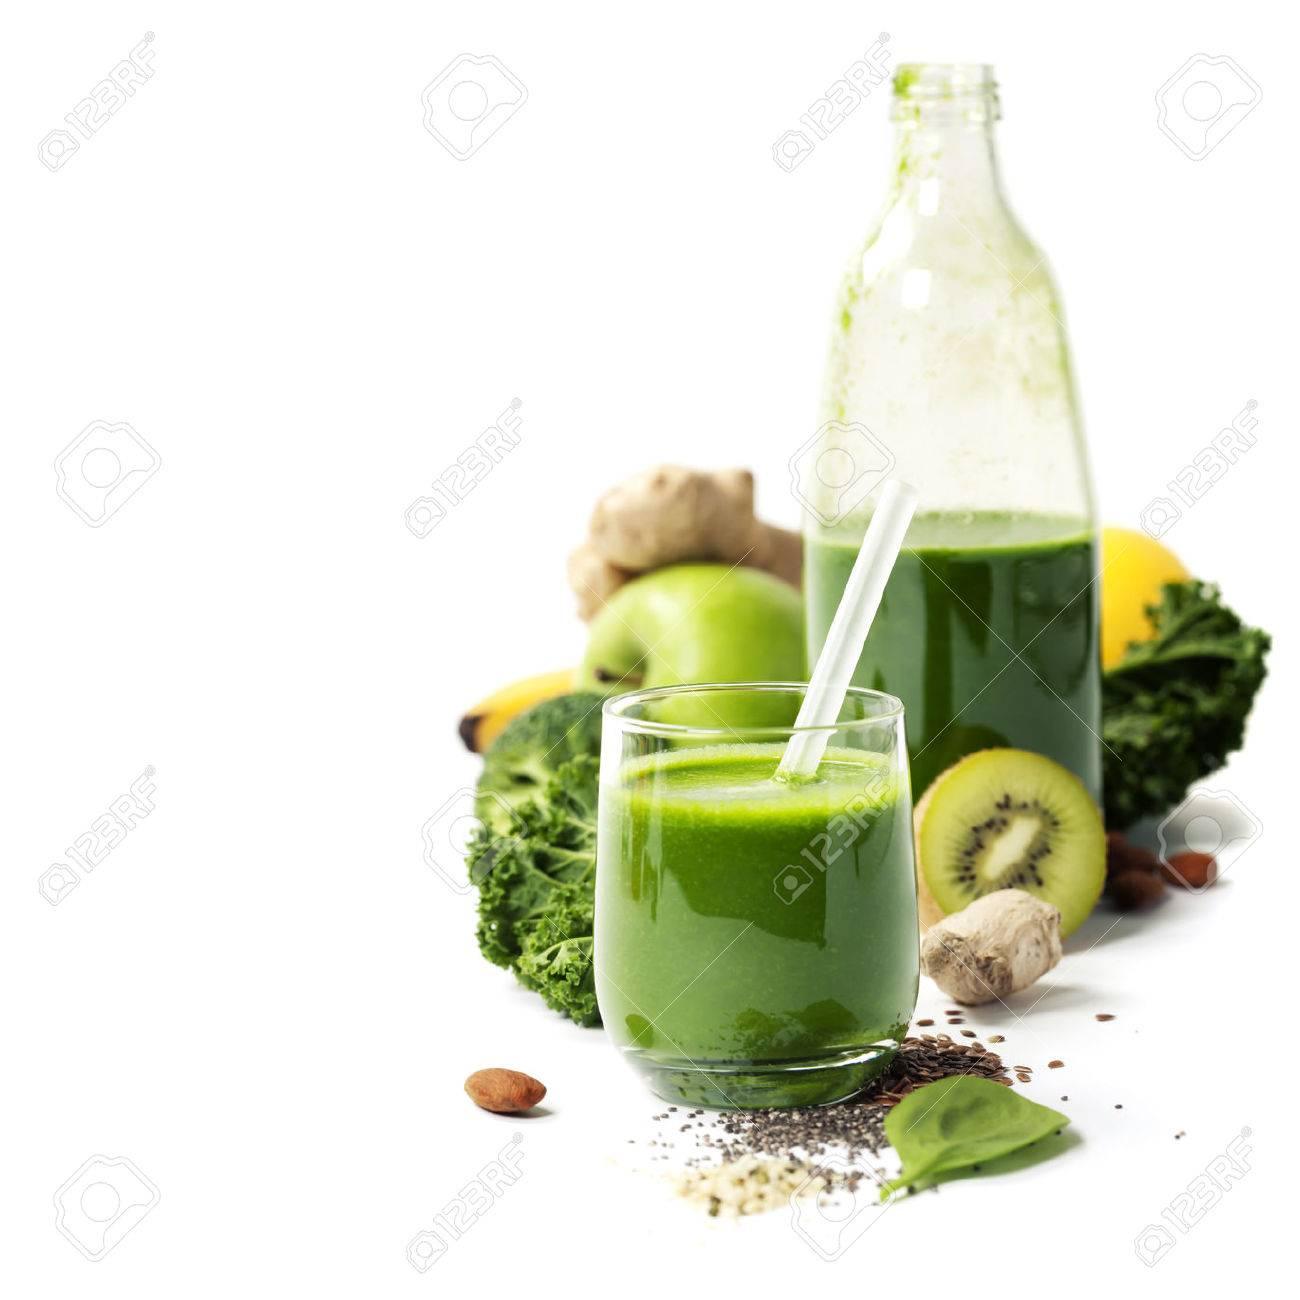 Healthy green smoothie and ingredients on white - superfoods, detox, diet, health, vegetarian food concept - 51221502